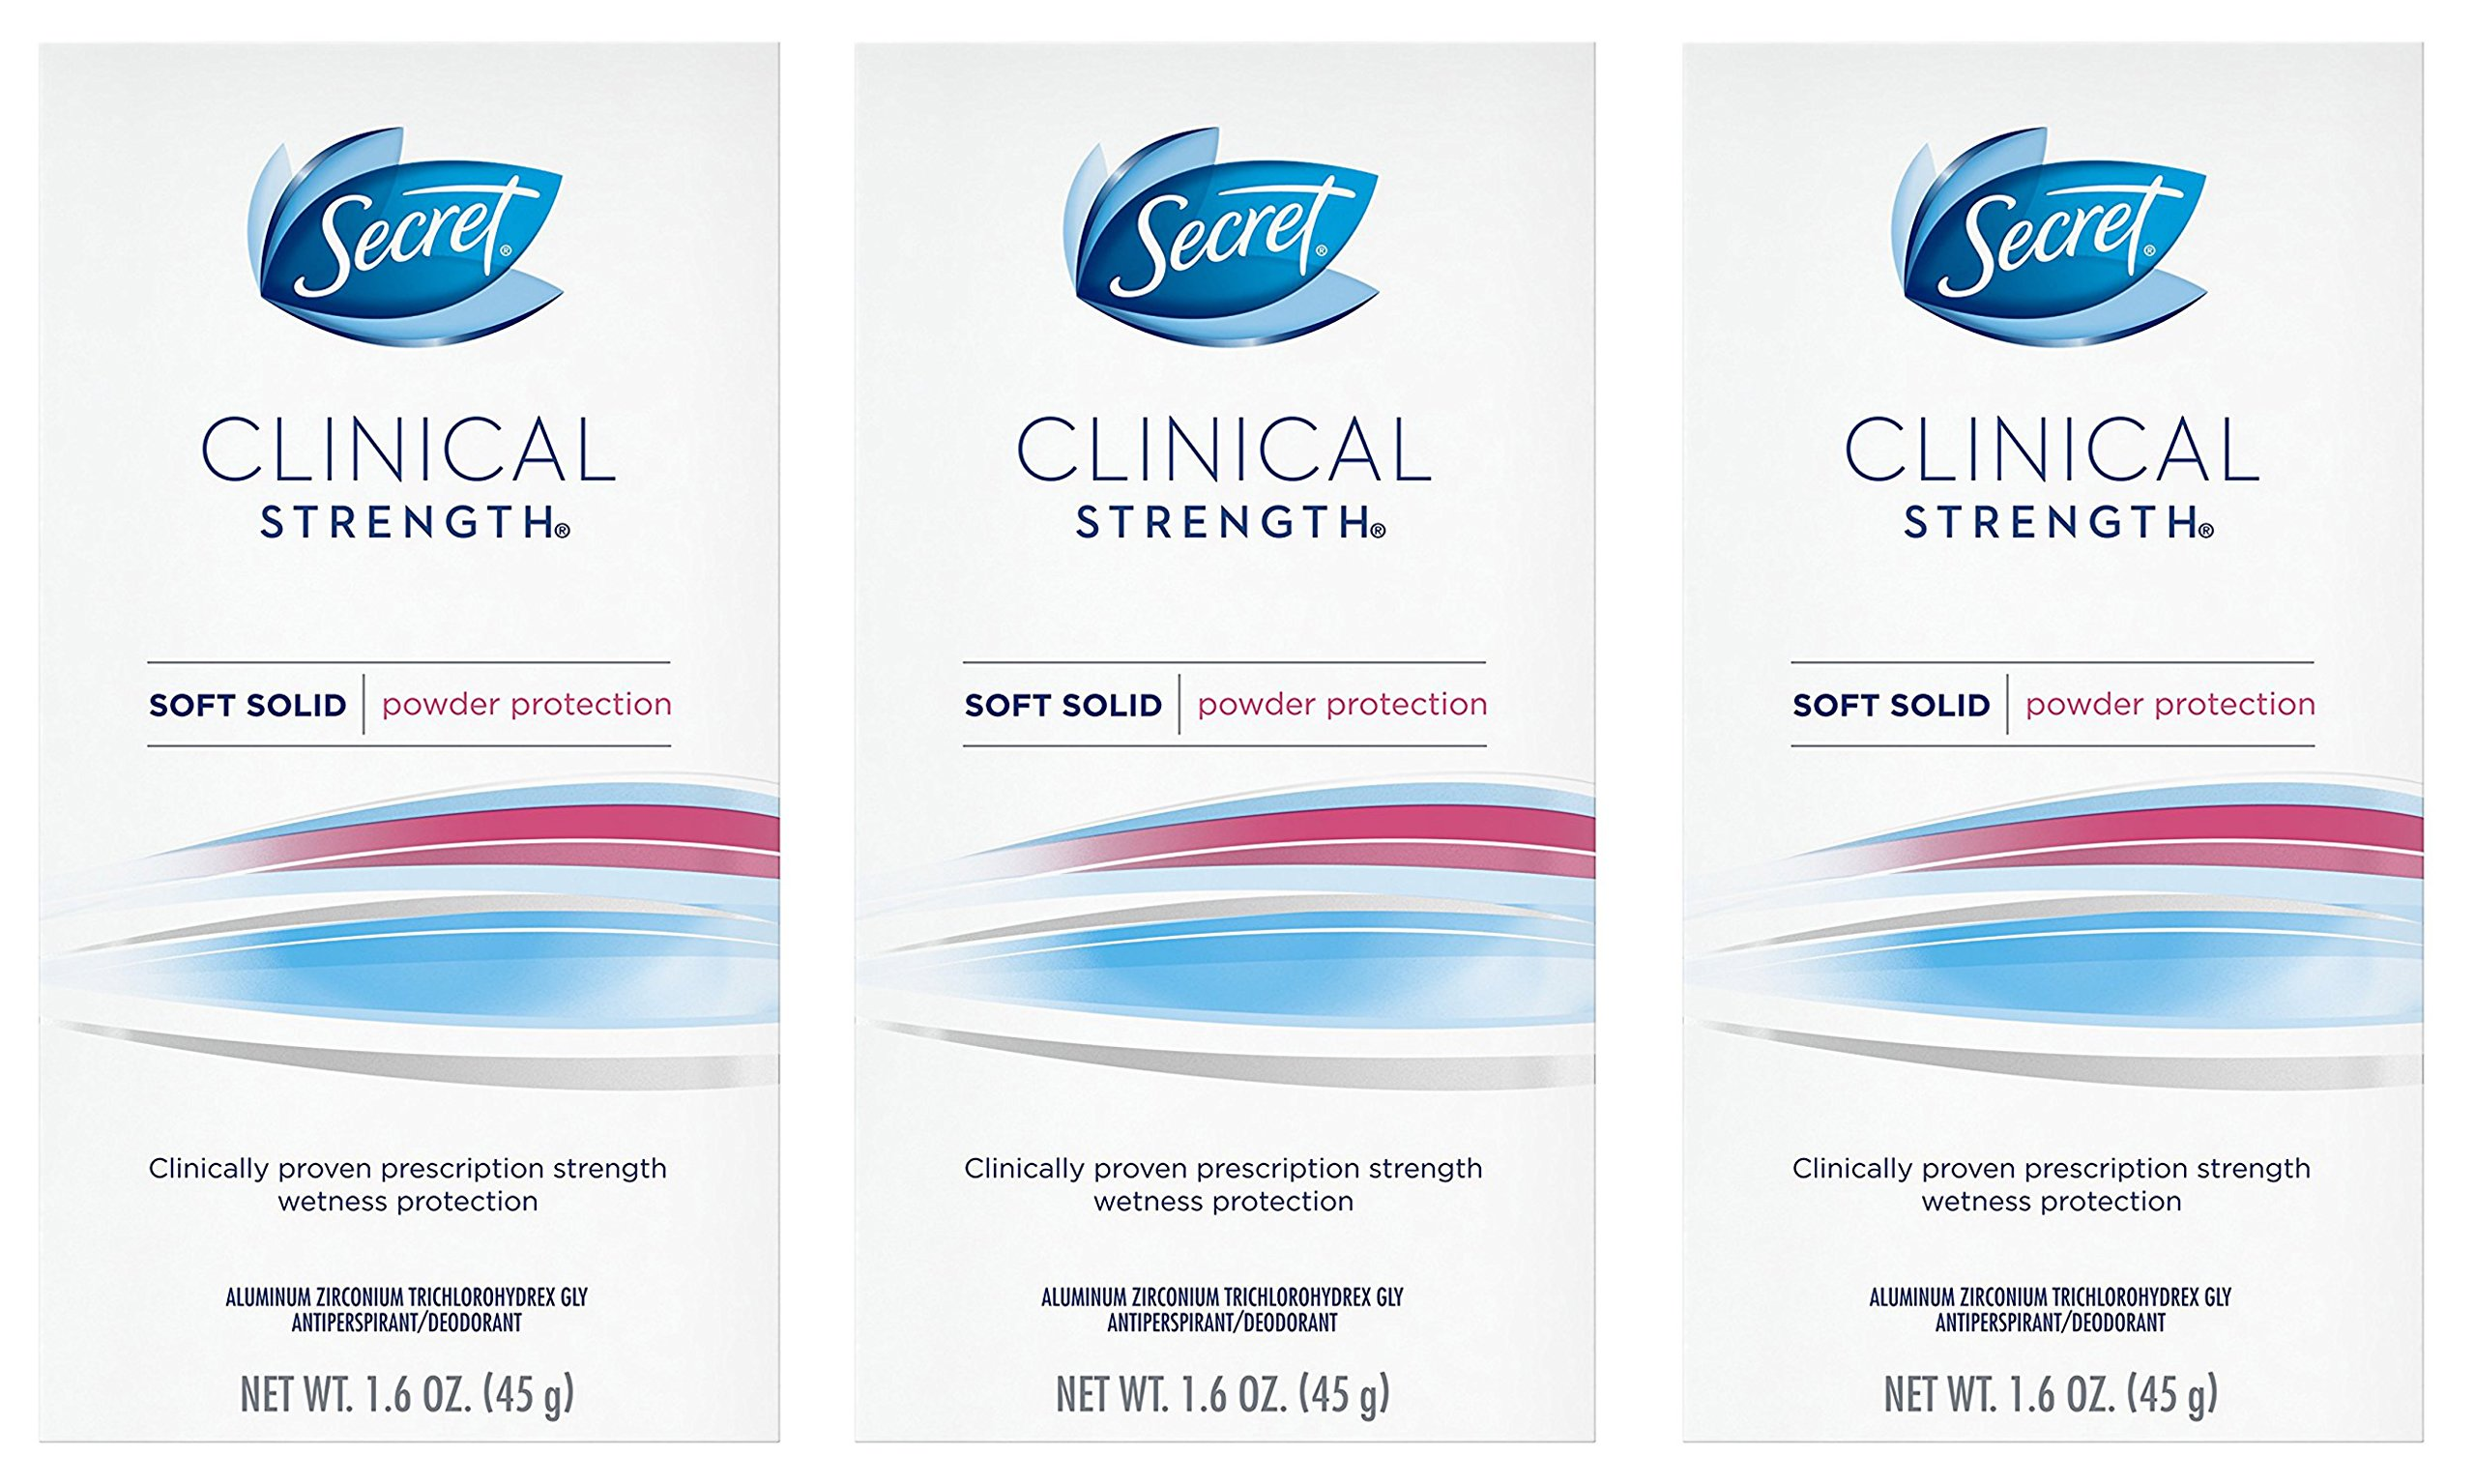 Secret Clinical Strength Antiperspirant and Deodorant Soft Solid, Powder Protection, 1.6 Oz.  ( Pack of 3 ) ( Packaging may Vary )